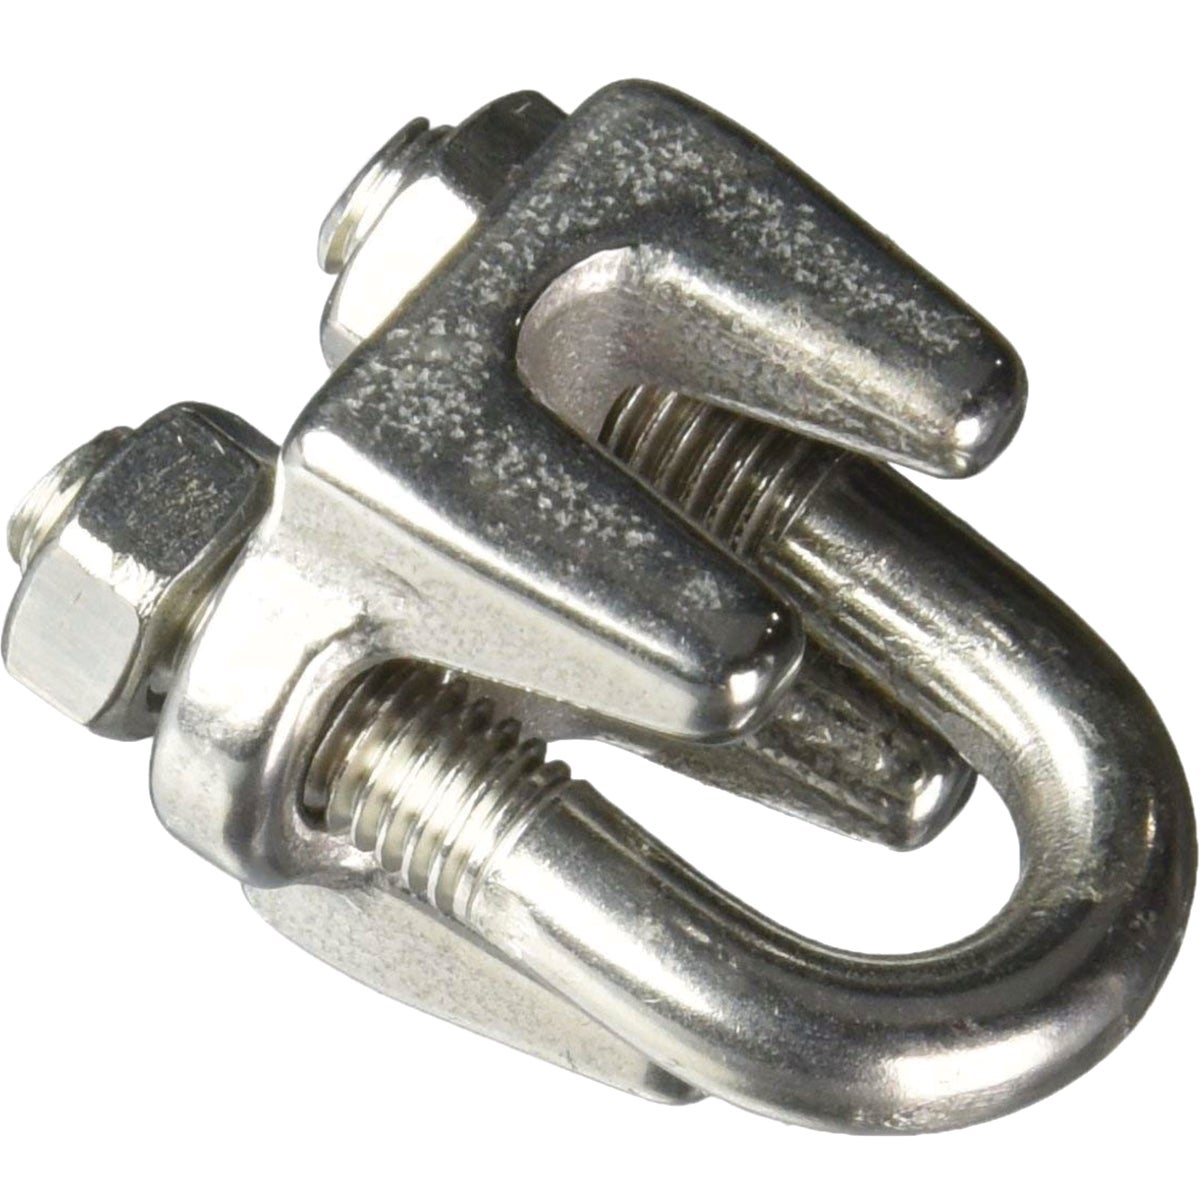 "3/16"" SS WIRE ROPE CLIP - T7633003 by Cooper Campbell Apex"